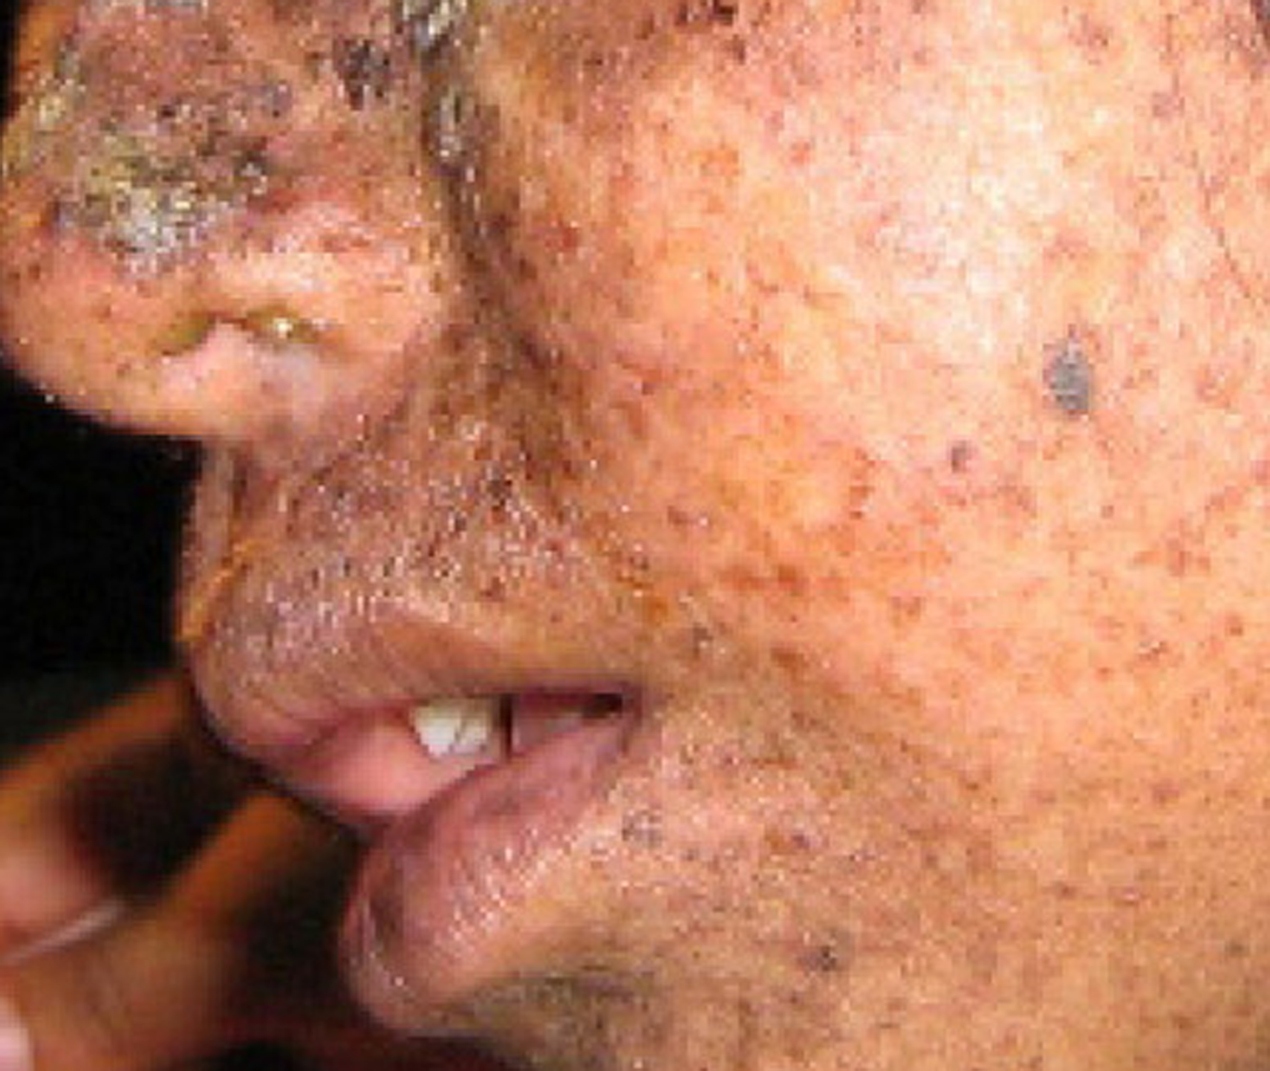 Photo shows a person with mottled skin lesions that result from xermoderma pigmentosa.